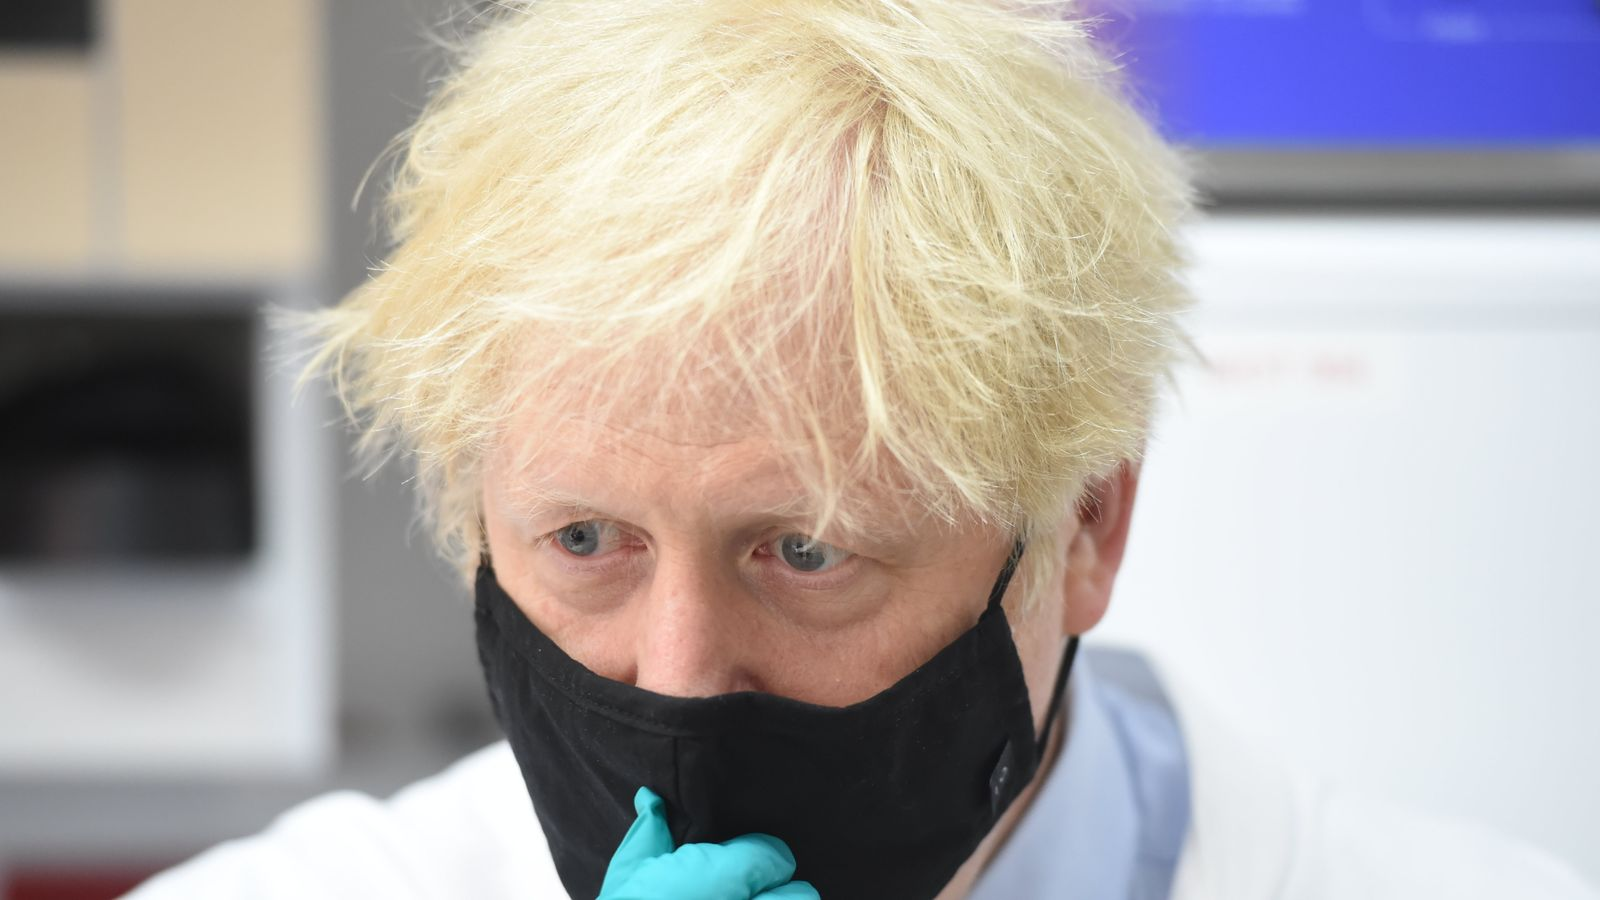 COVID-19: Boris Johnson says it's 'looking good' for 19 July - but won't rule out further lockdowns in the winter